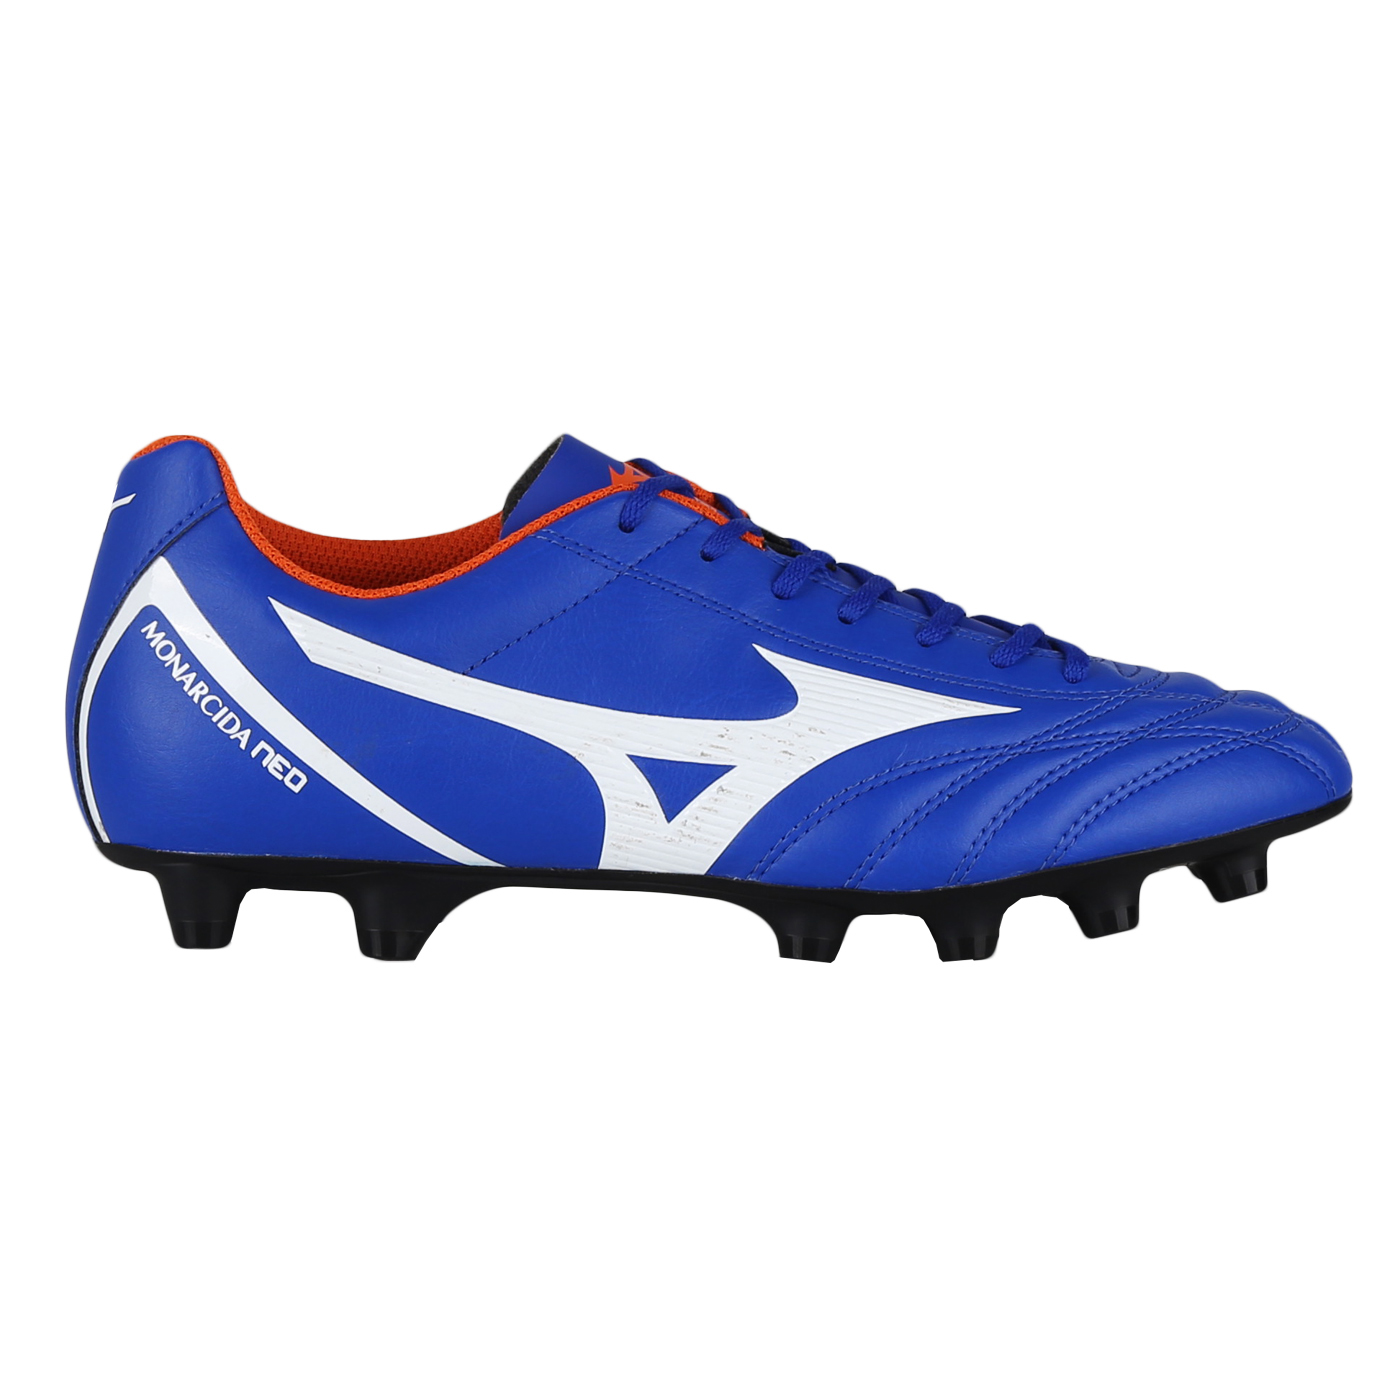 MONARCIDA NEO SELECT - REFLEX BLUE/ WHITE/ RED ORANGE